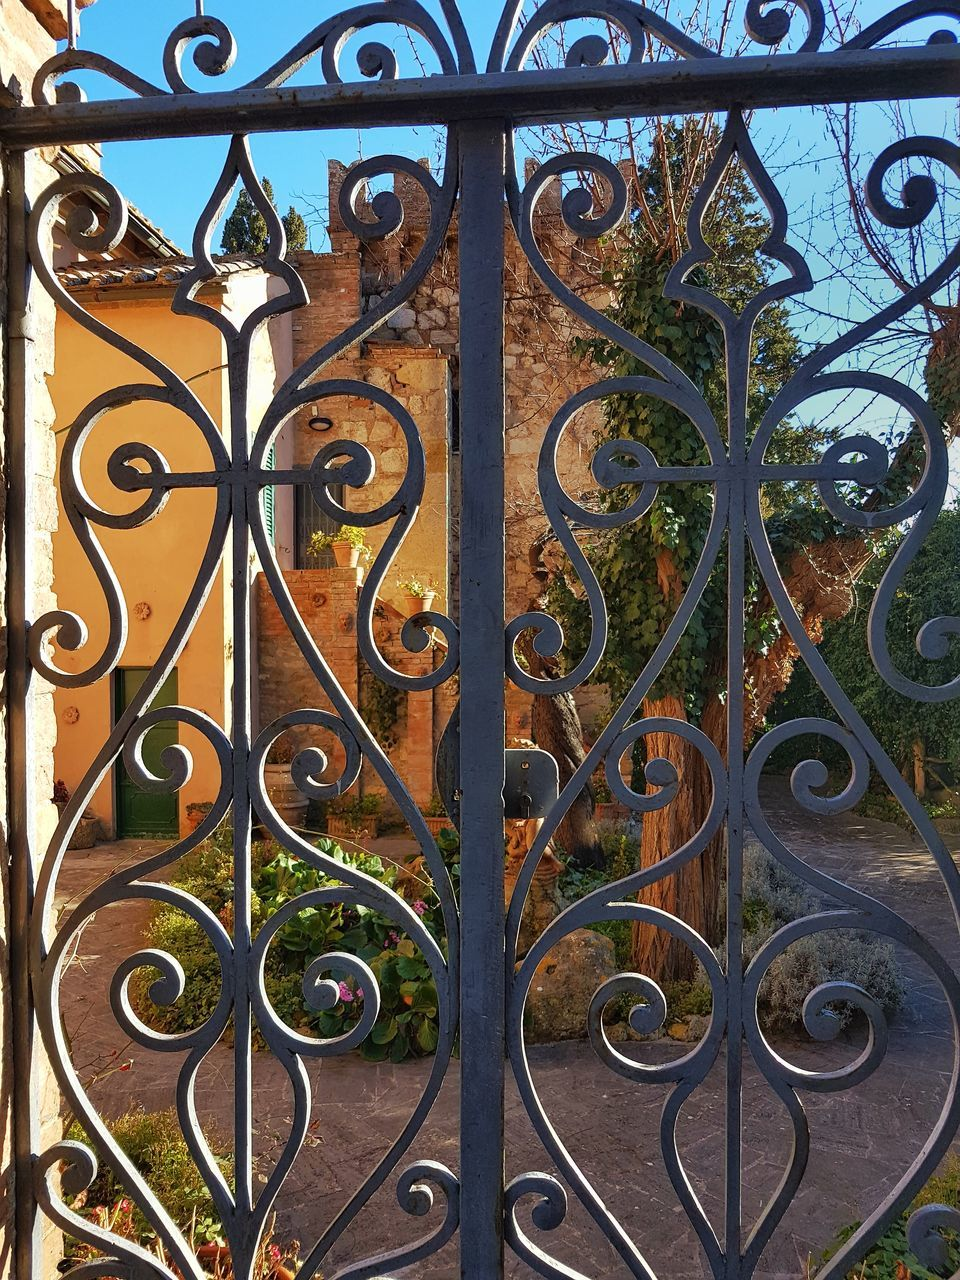 metal, gate, wrought iron, design, ornate, pattern, door, day, gold colored, outdoors, no people, cast iron, metal grate, architecture, close-up, building exterior